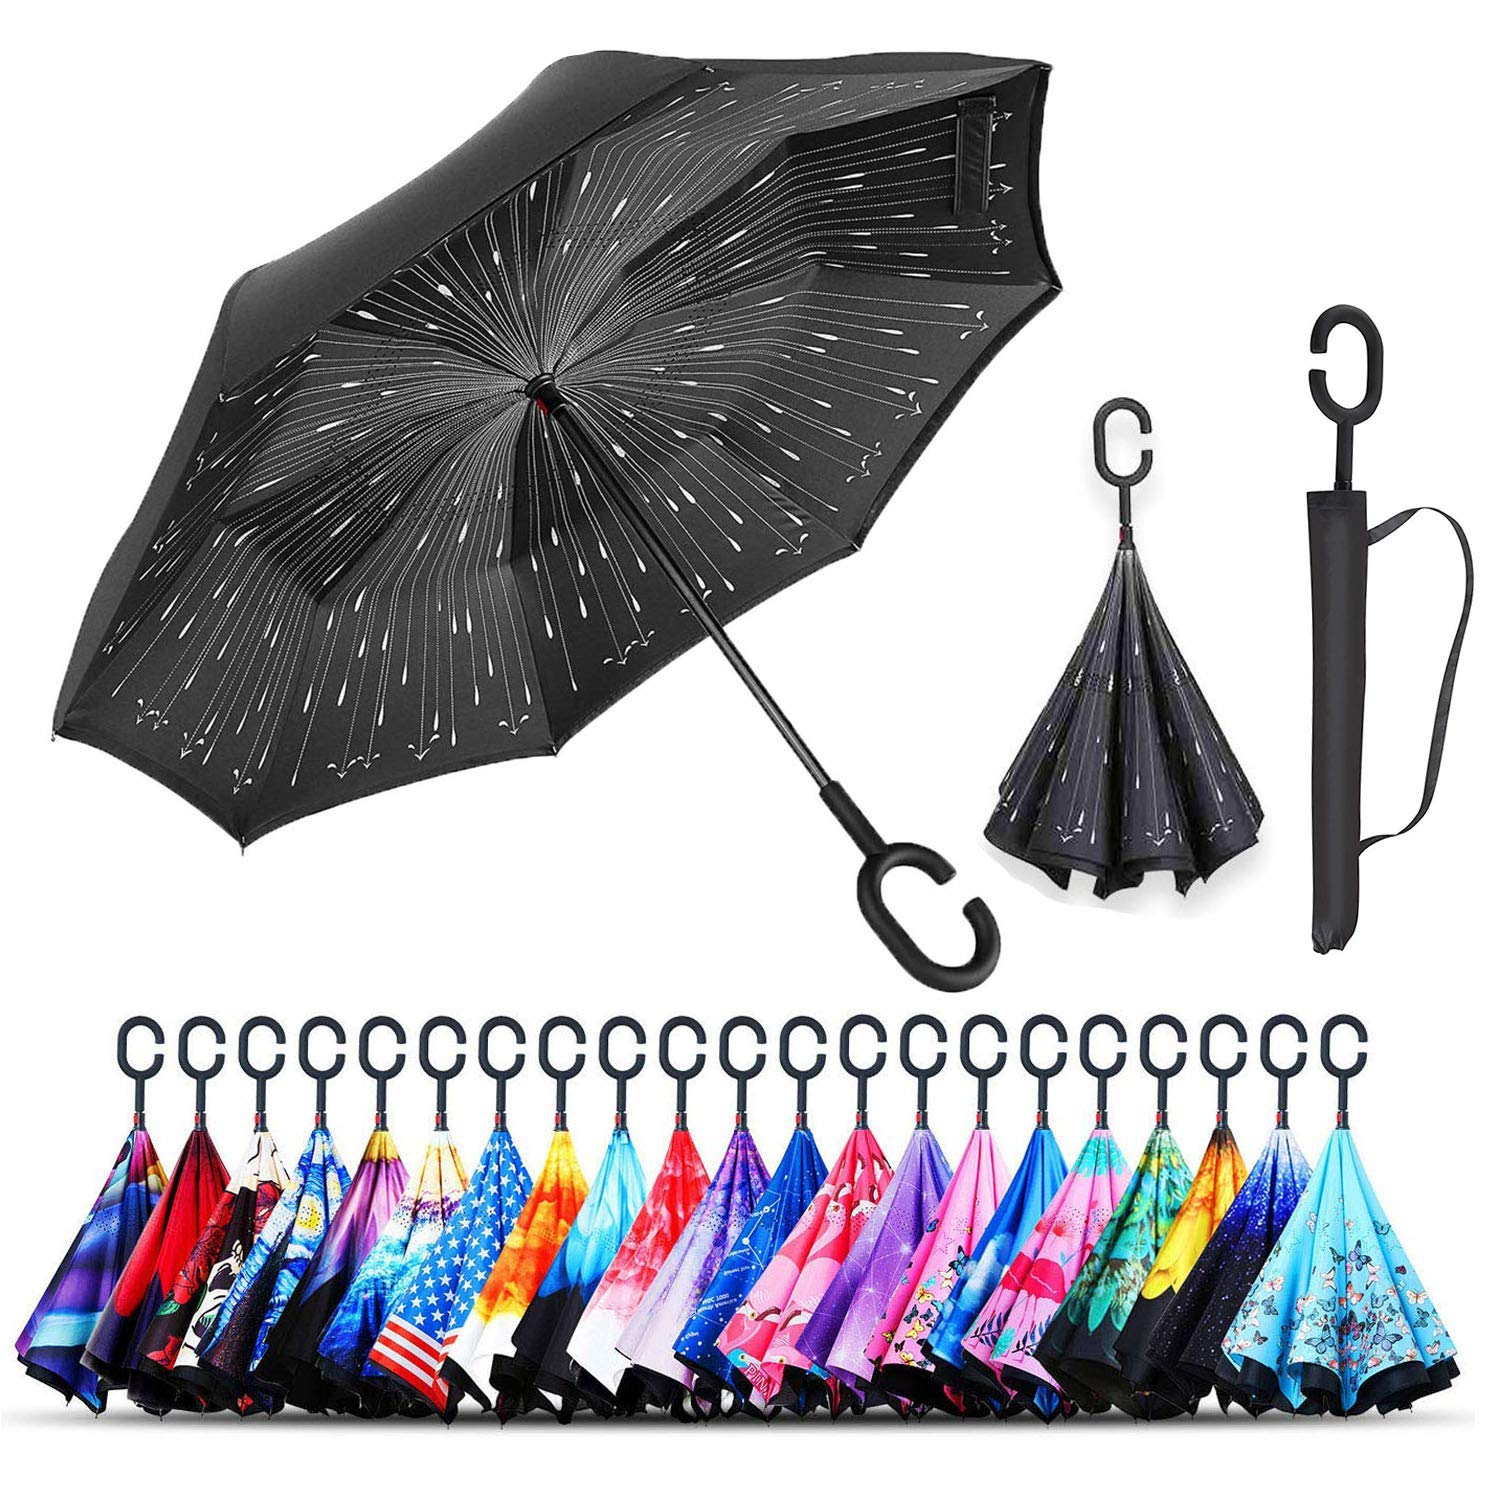 Monstleo Inverted Umbrella,Double Layer Reverse Umbrella for Car and Outdoor Use by, Windproof UV Protection Big Straight Umbrella with C-Shaped Handle and Carrying Bag (rain) by Monstleo